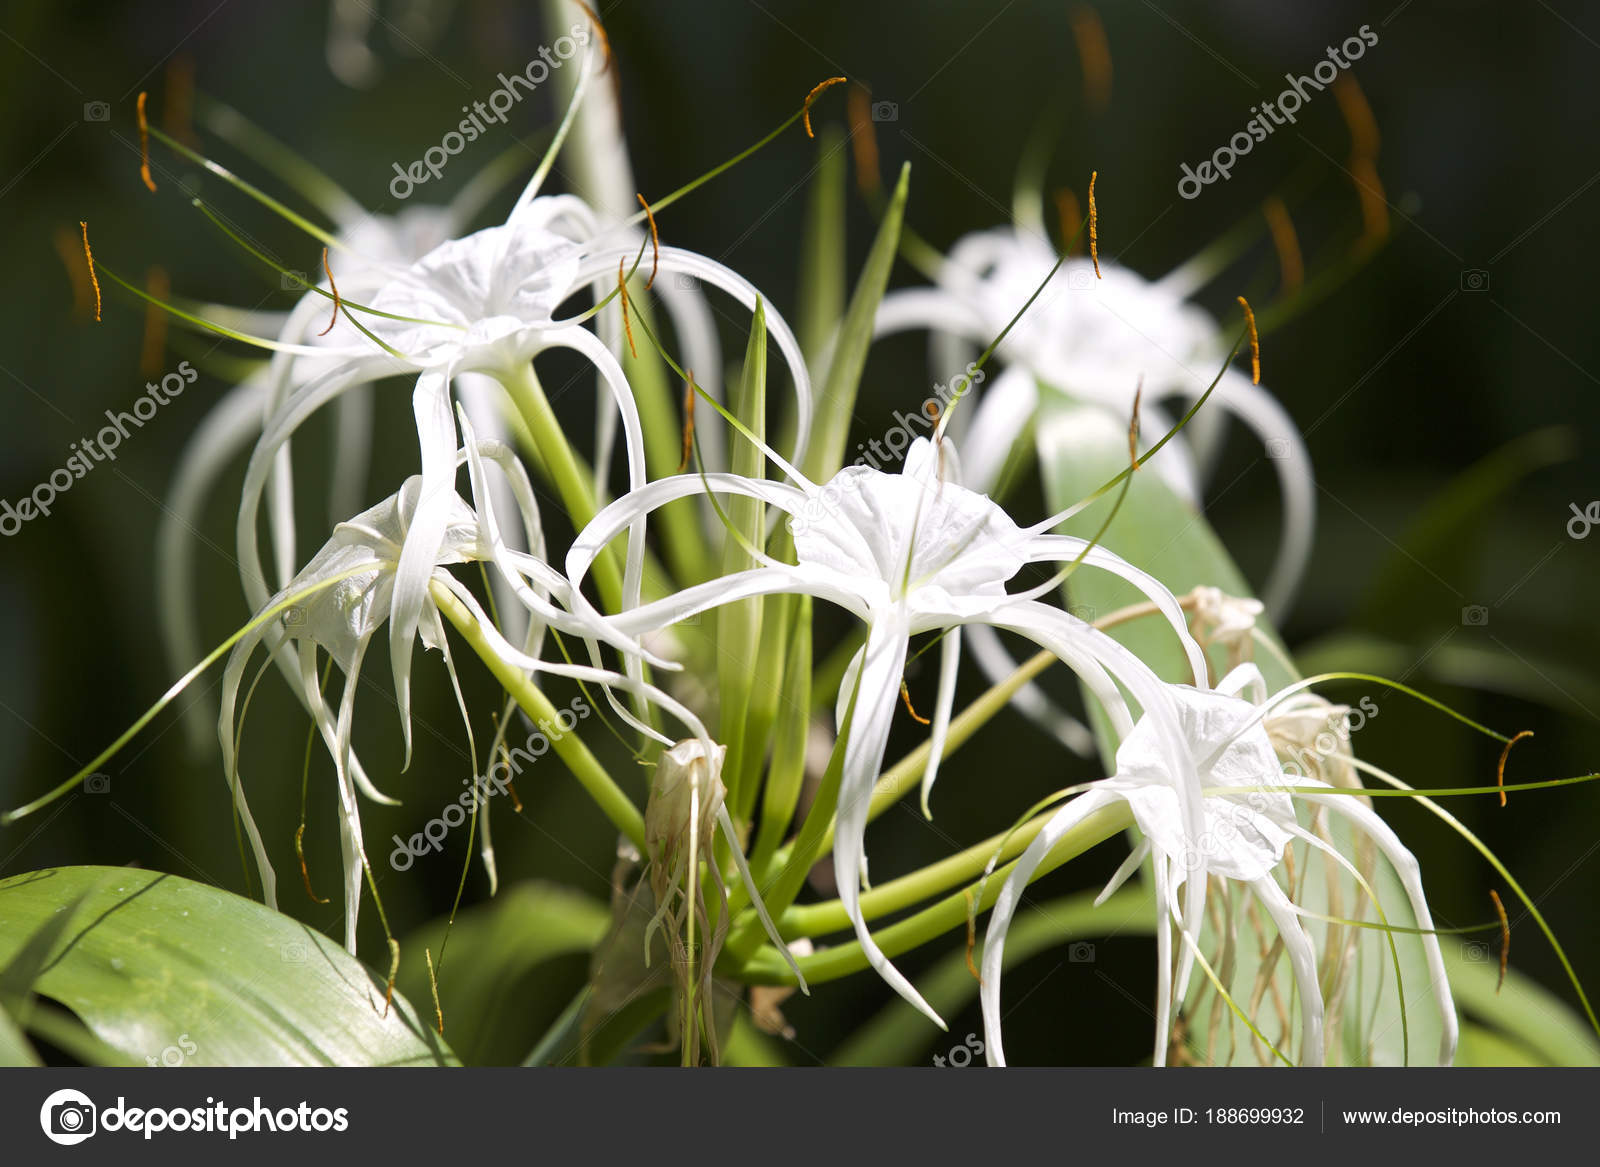 White Tropical Cultivated Flowers With Long Petals Stock Photo